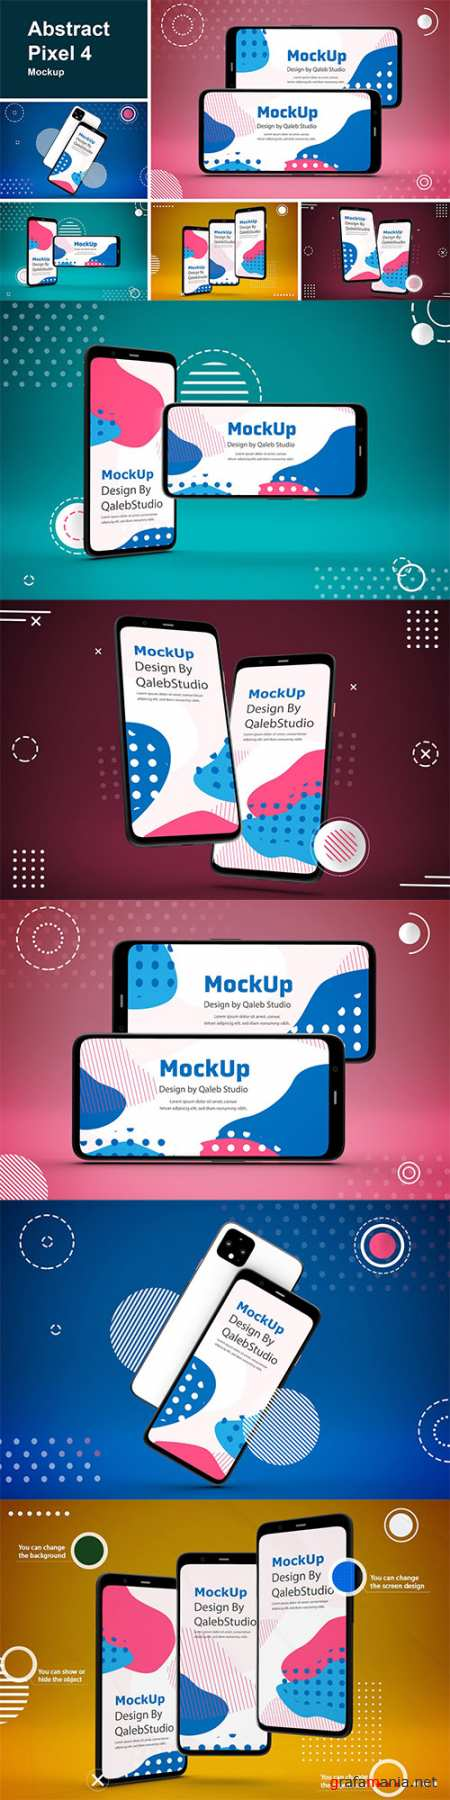 Abstract Pixel 4 mockup PSD